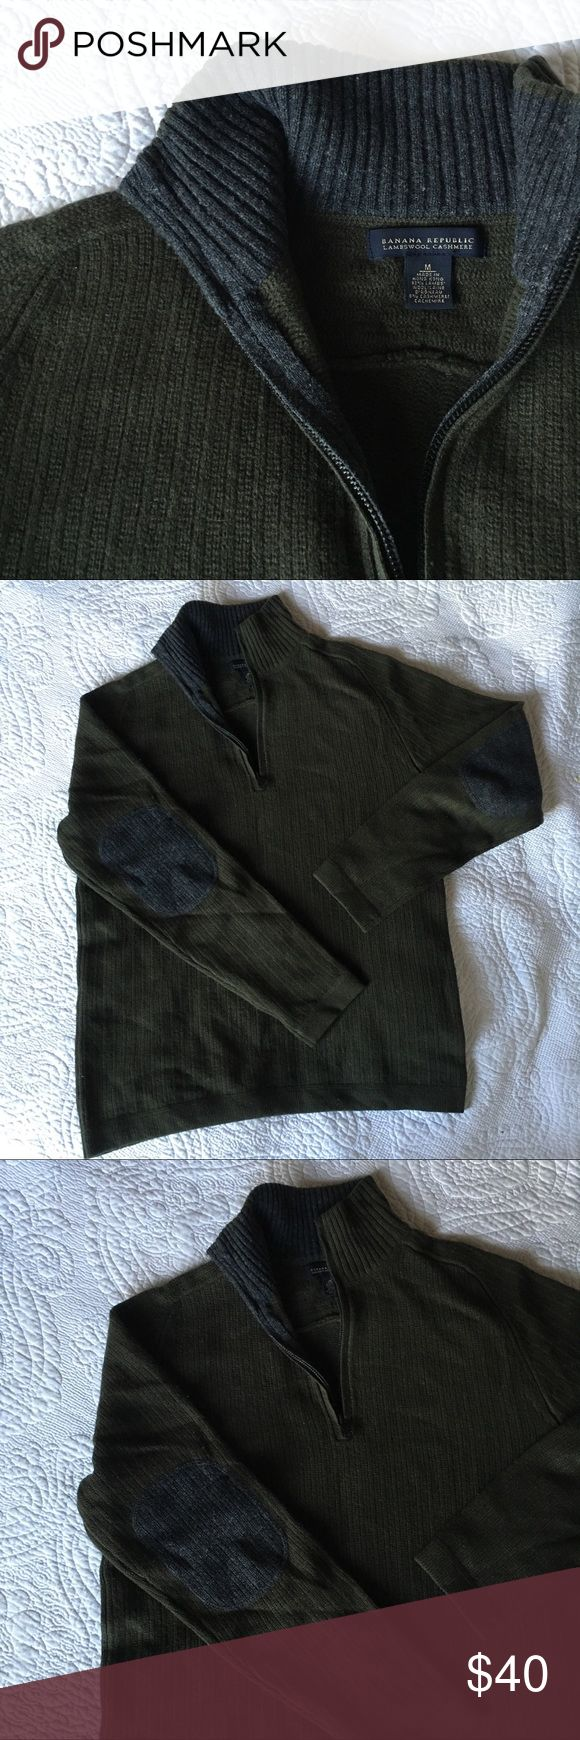 Banana Republic • Lambswool Cashmere Sweater Men's Banana Republic Lambswool Cashmere Sweater in Hunter Green • Size Medium • Grey Elbow Patches • 1/4 Zip • Turtleneck • Excellent Condition ( small hole near armpit see picture) 92% Lambswool • 2% Cashmere • Feel free to ask questions ••• Offers always welcome Banana Republic Sweaters